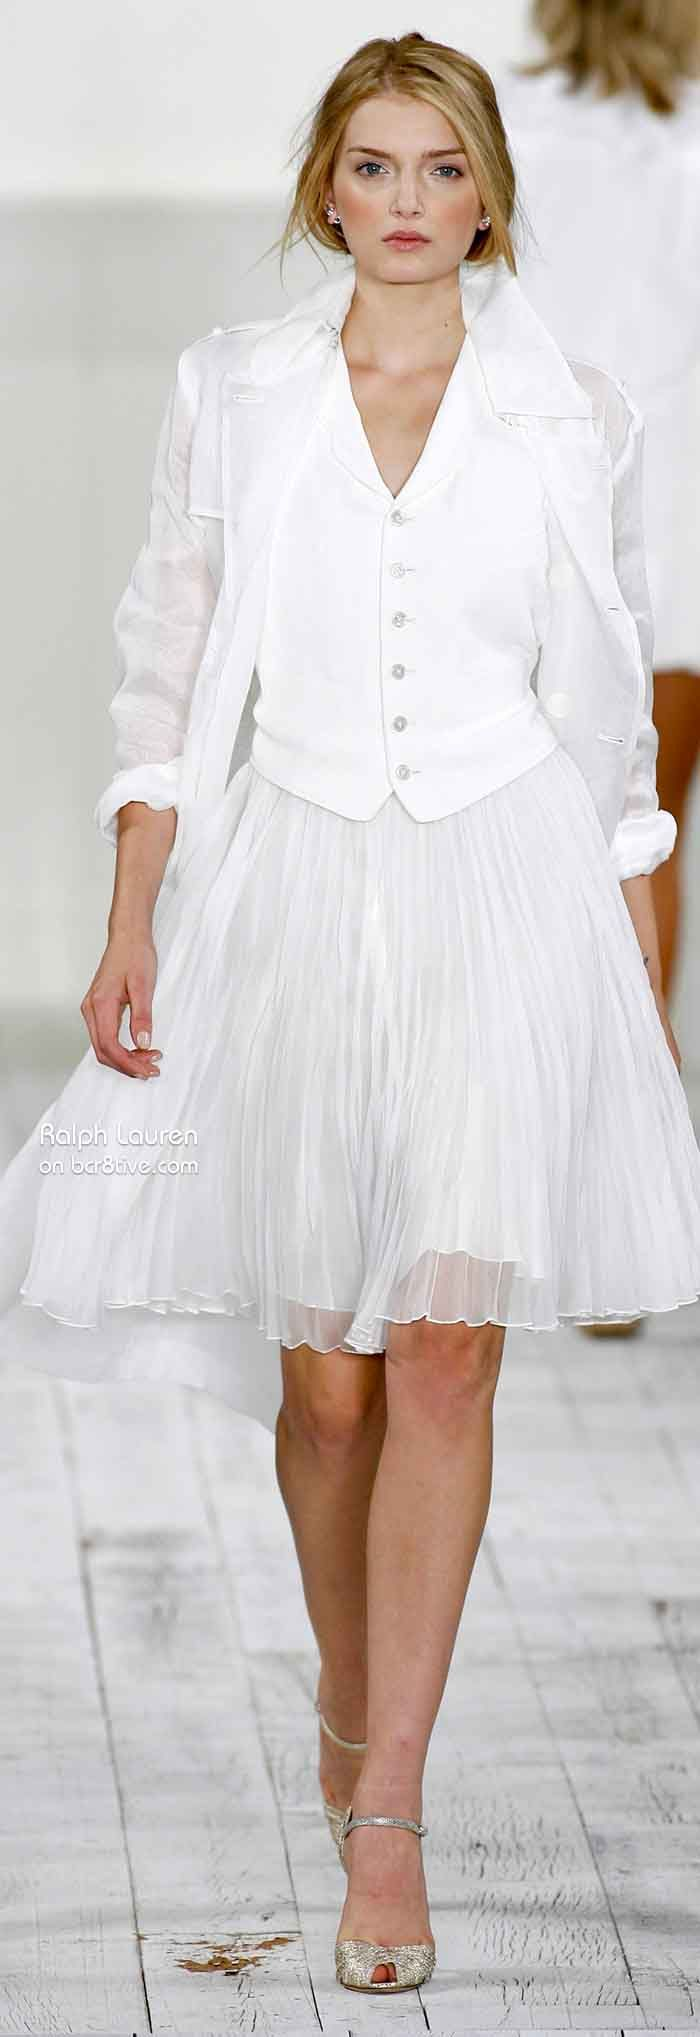 Ralph Lauren Spring Summer 2010  RTW️PM (That's not my style, but it's pretty).